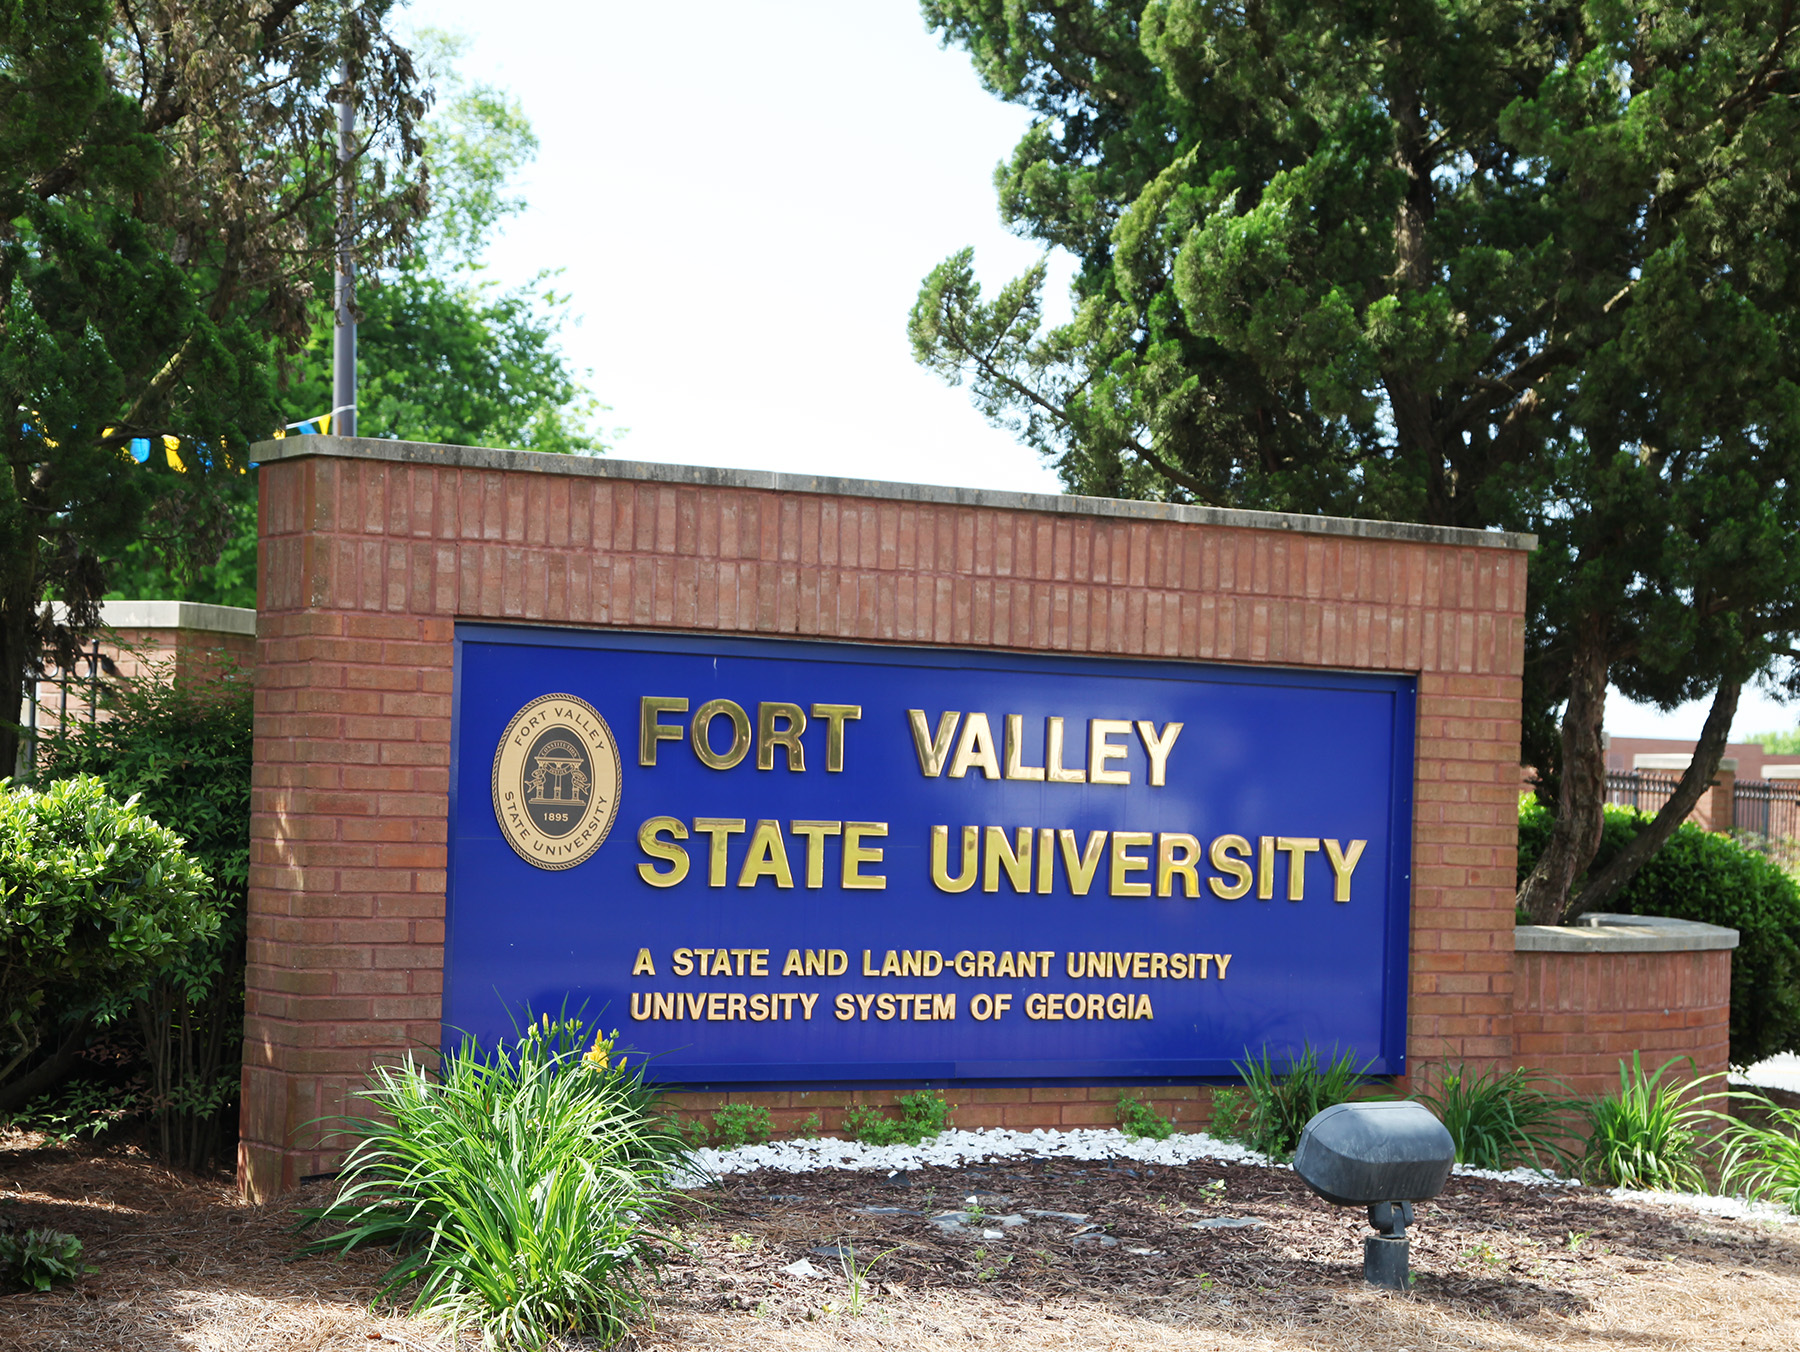 FVSU Welcomes New Assistant Vice President for Academic Affairs and Director of IRPE